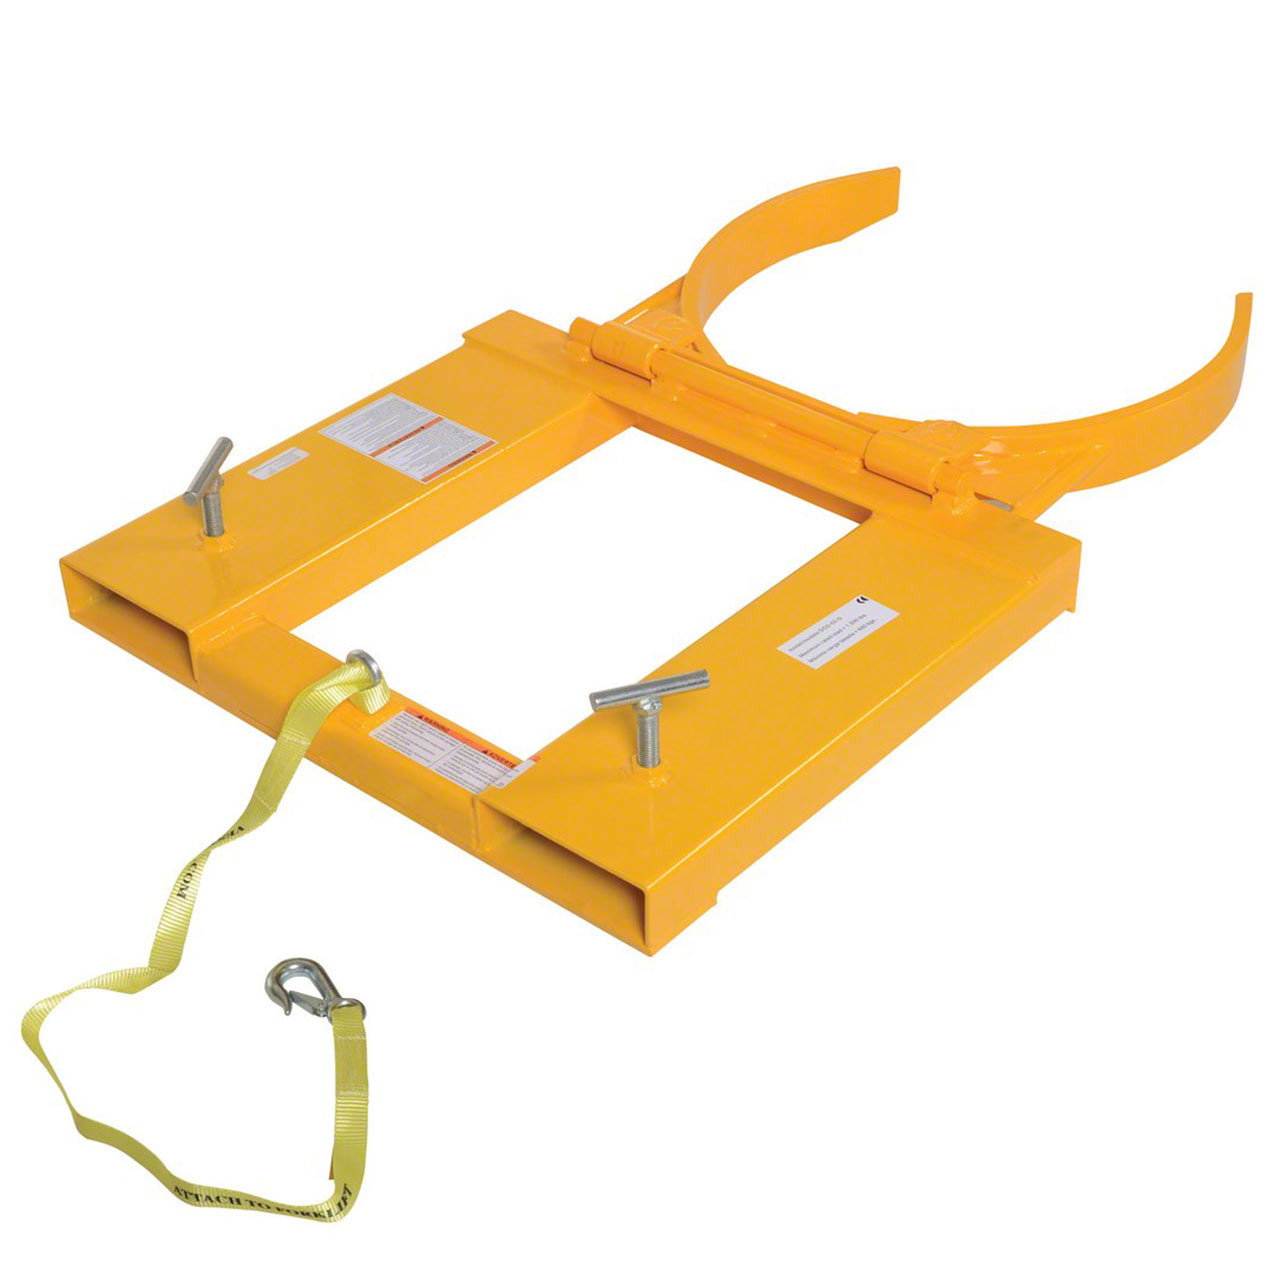 This single drum lifter includes a safety chain that attaches to the fork truck